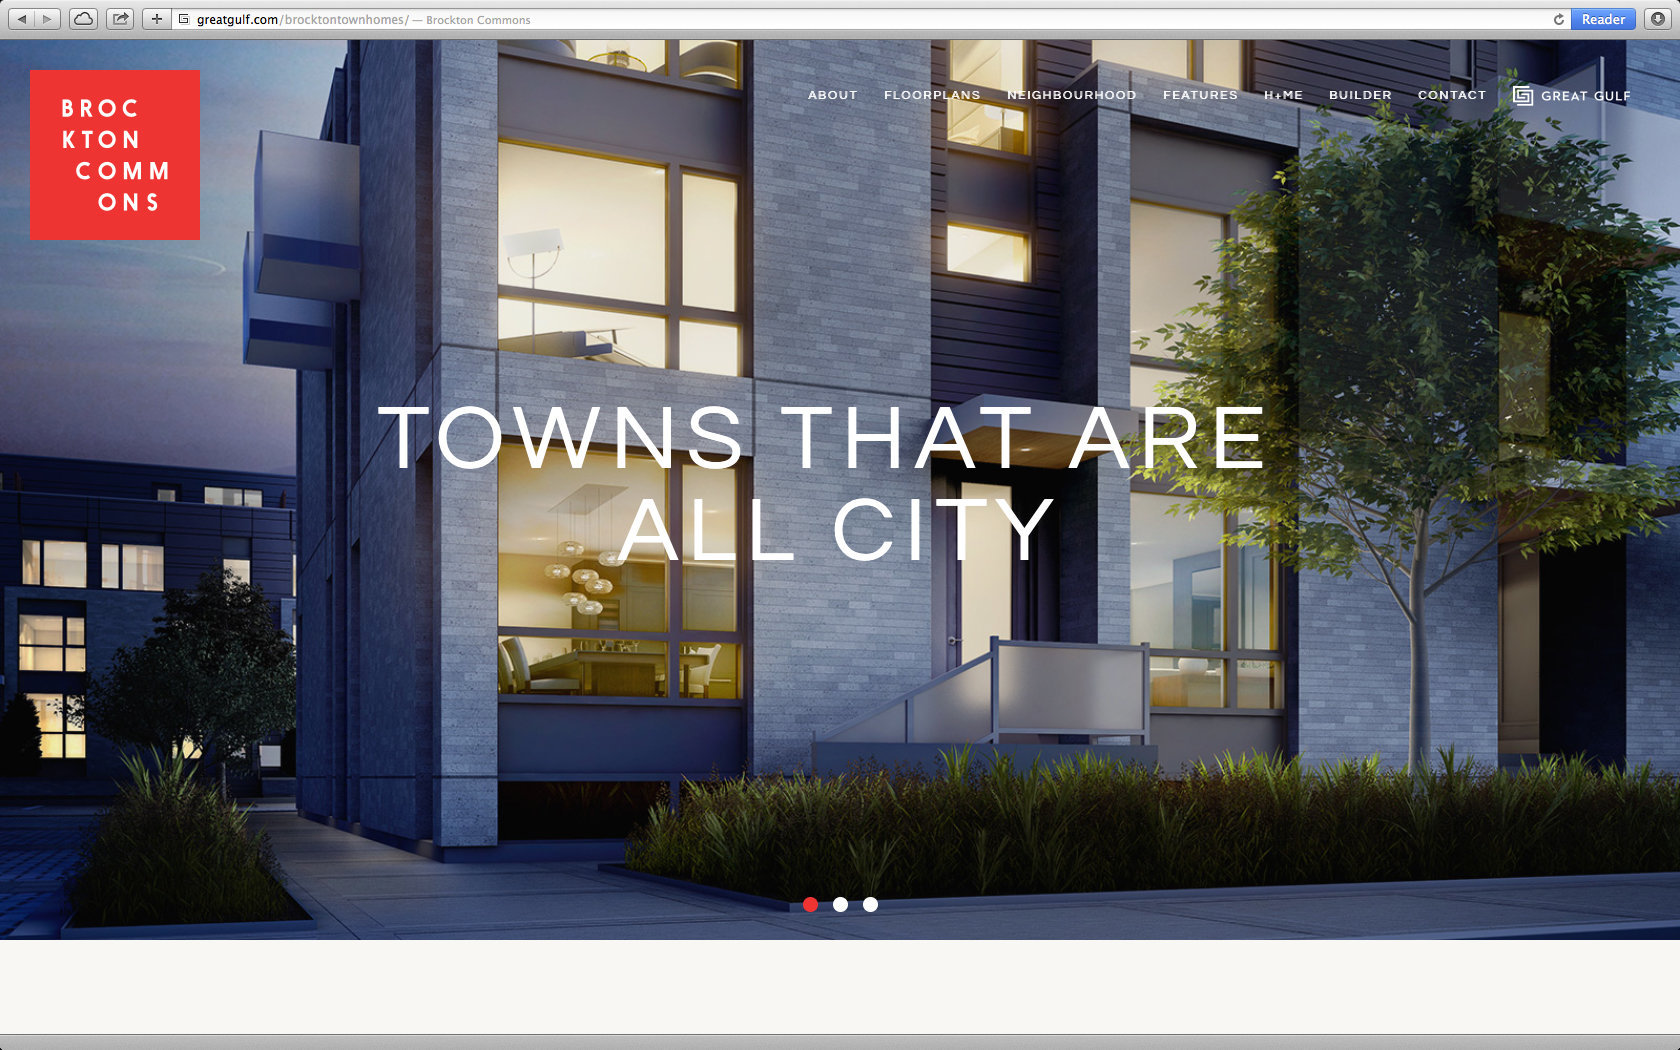 BROCKTON COMMONS TOWNHOMES WEBSITE  1/13